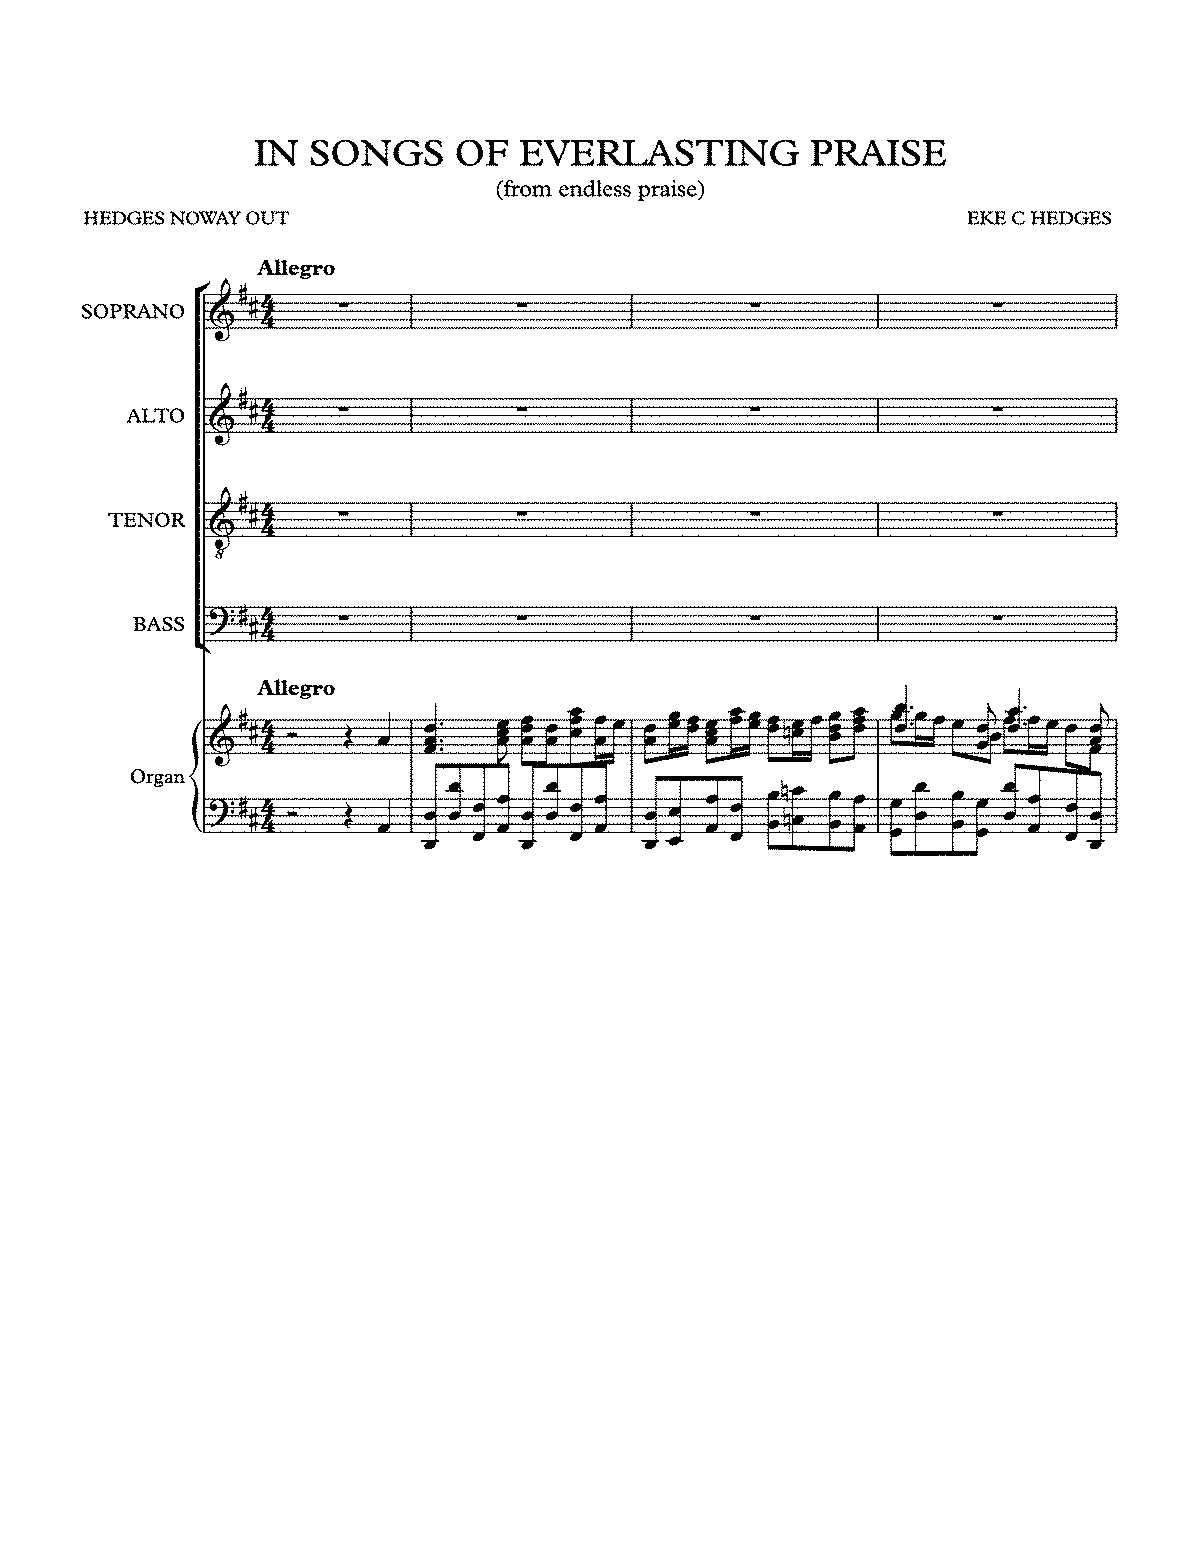 PMLP684417-IN SONGS OF EVERLASTING PRAISE REAL.pdf